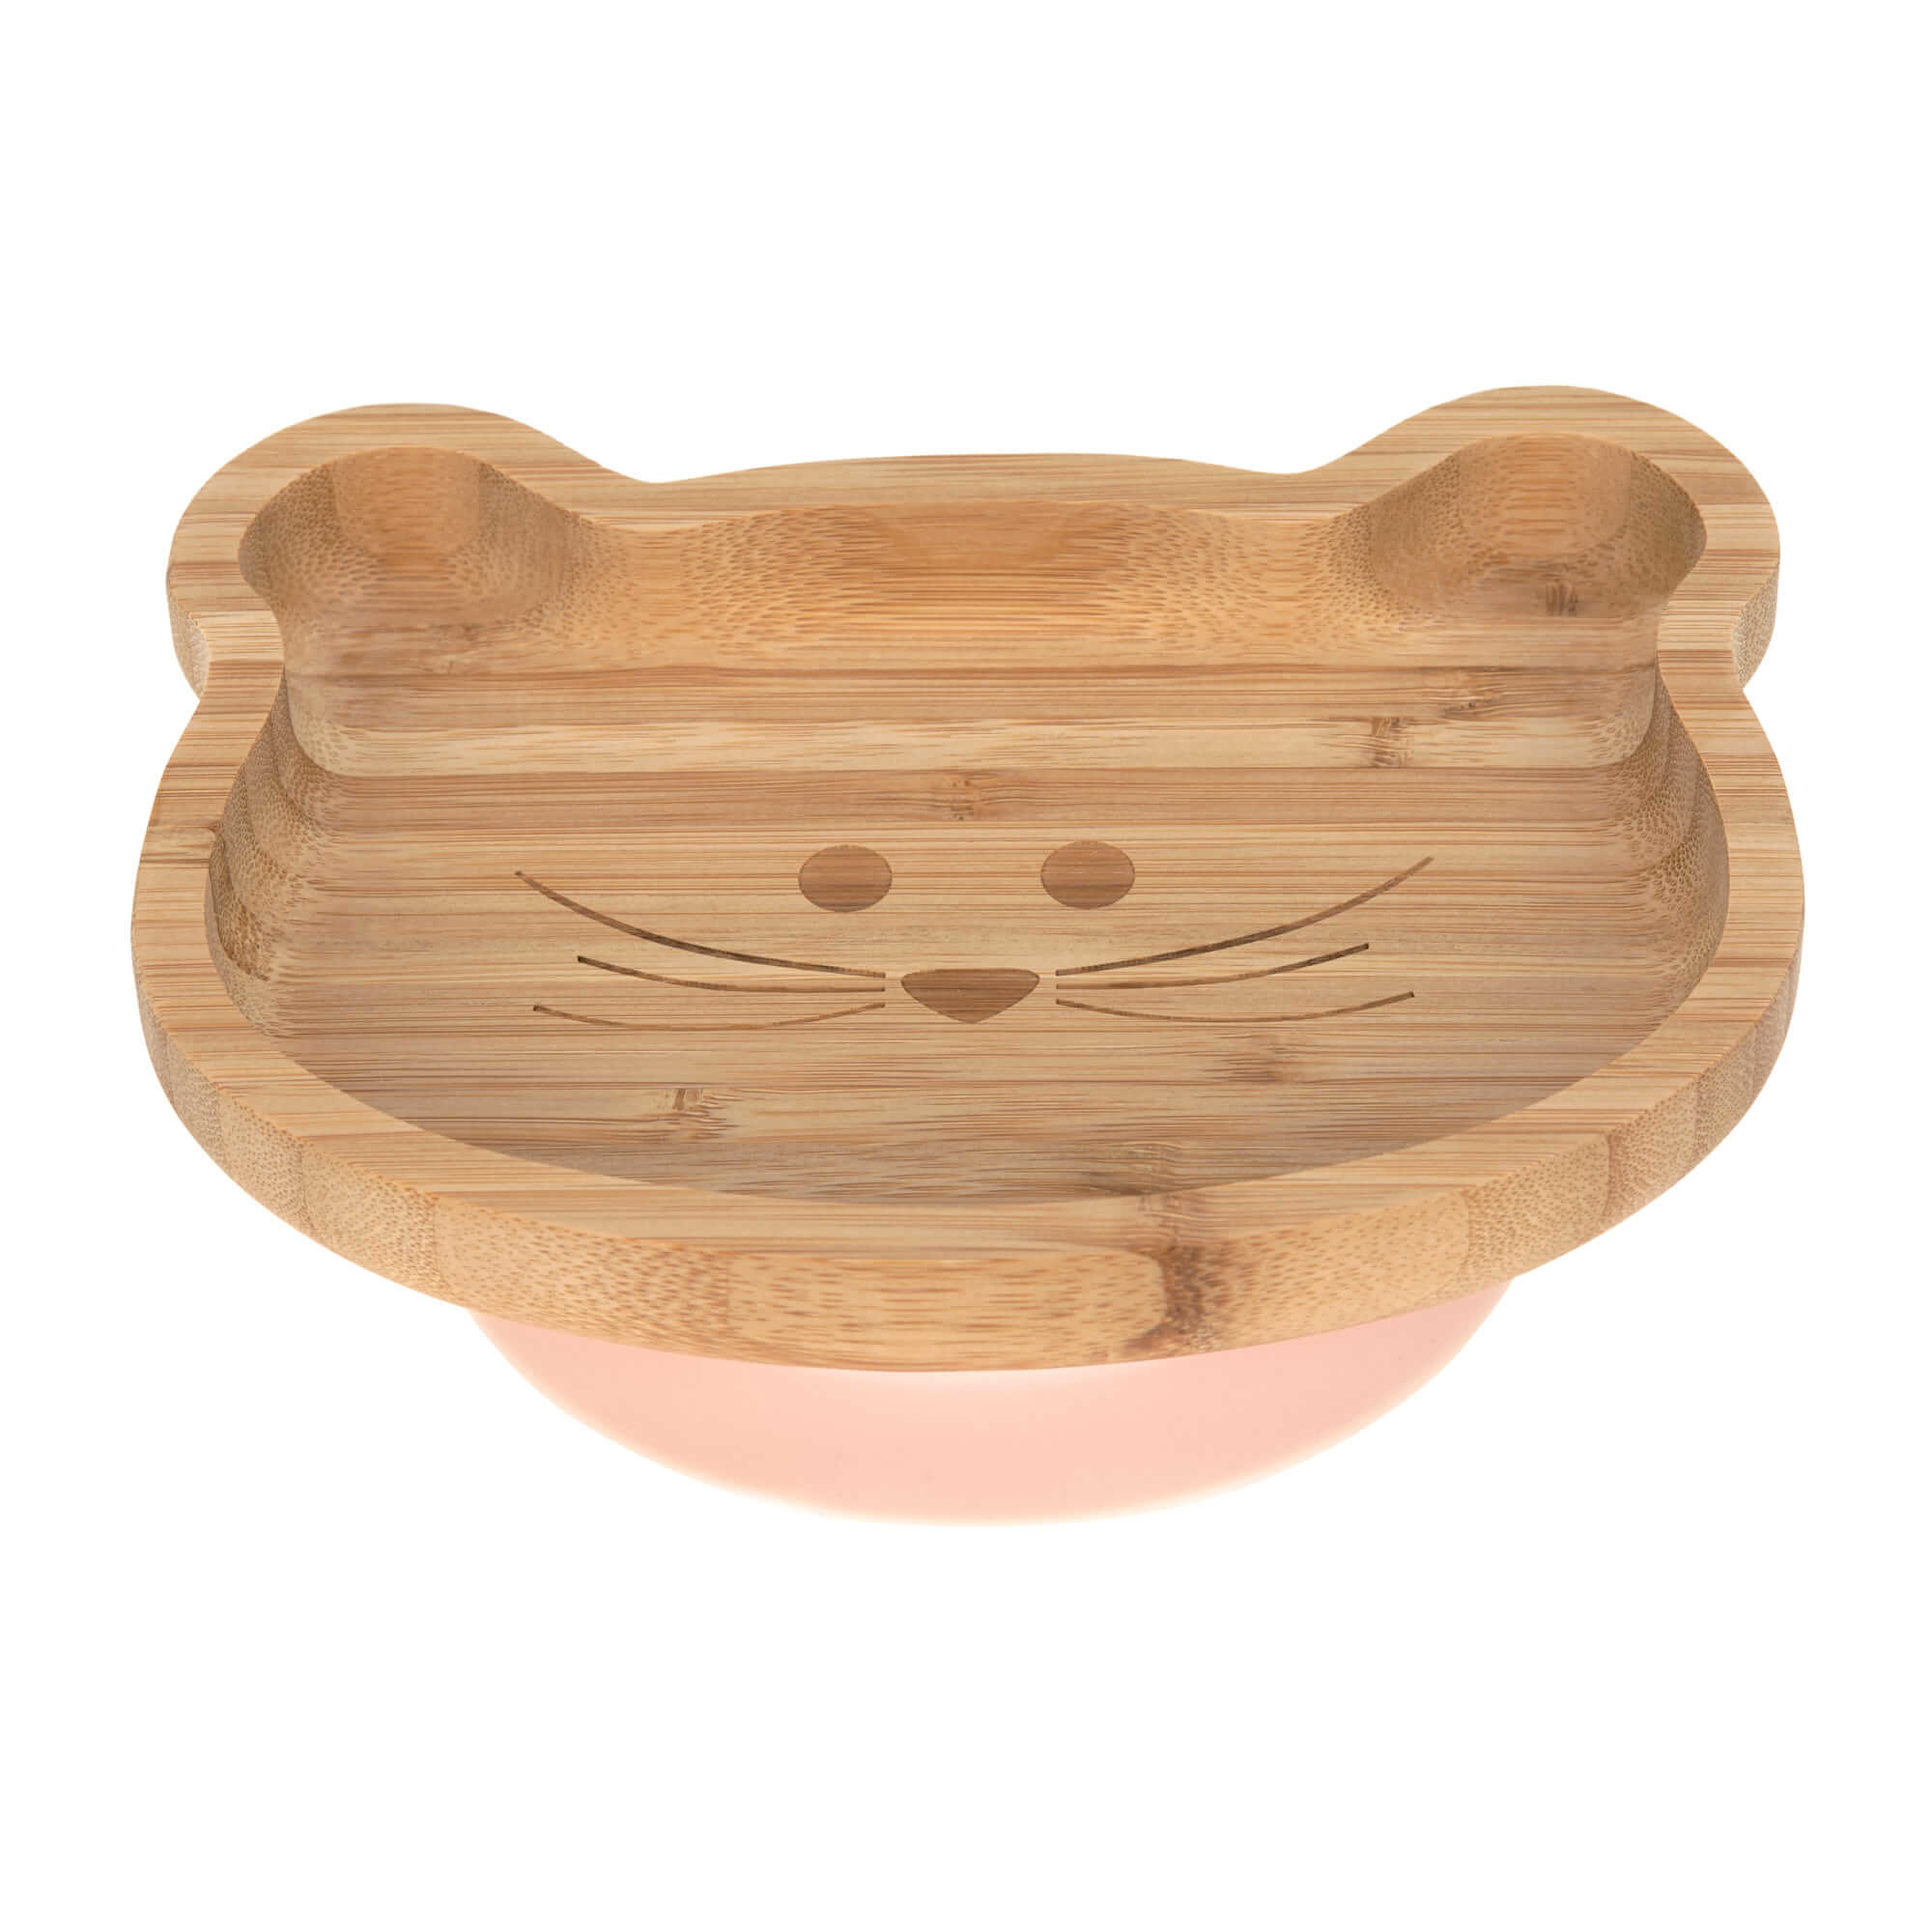 Lässig Lässig 4Babies & Kids Bord bamboo/hout met zuignap silicone little chums mouse